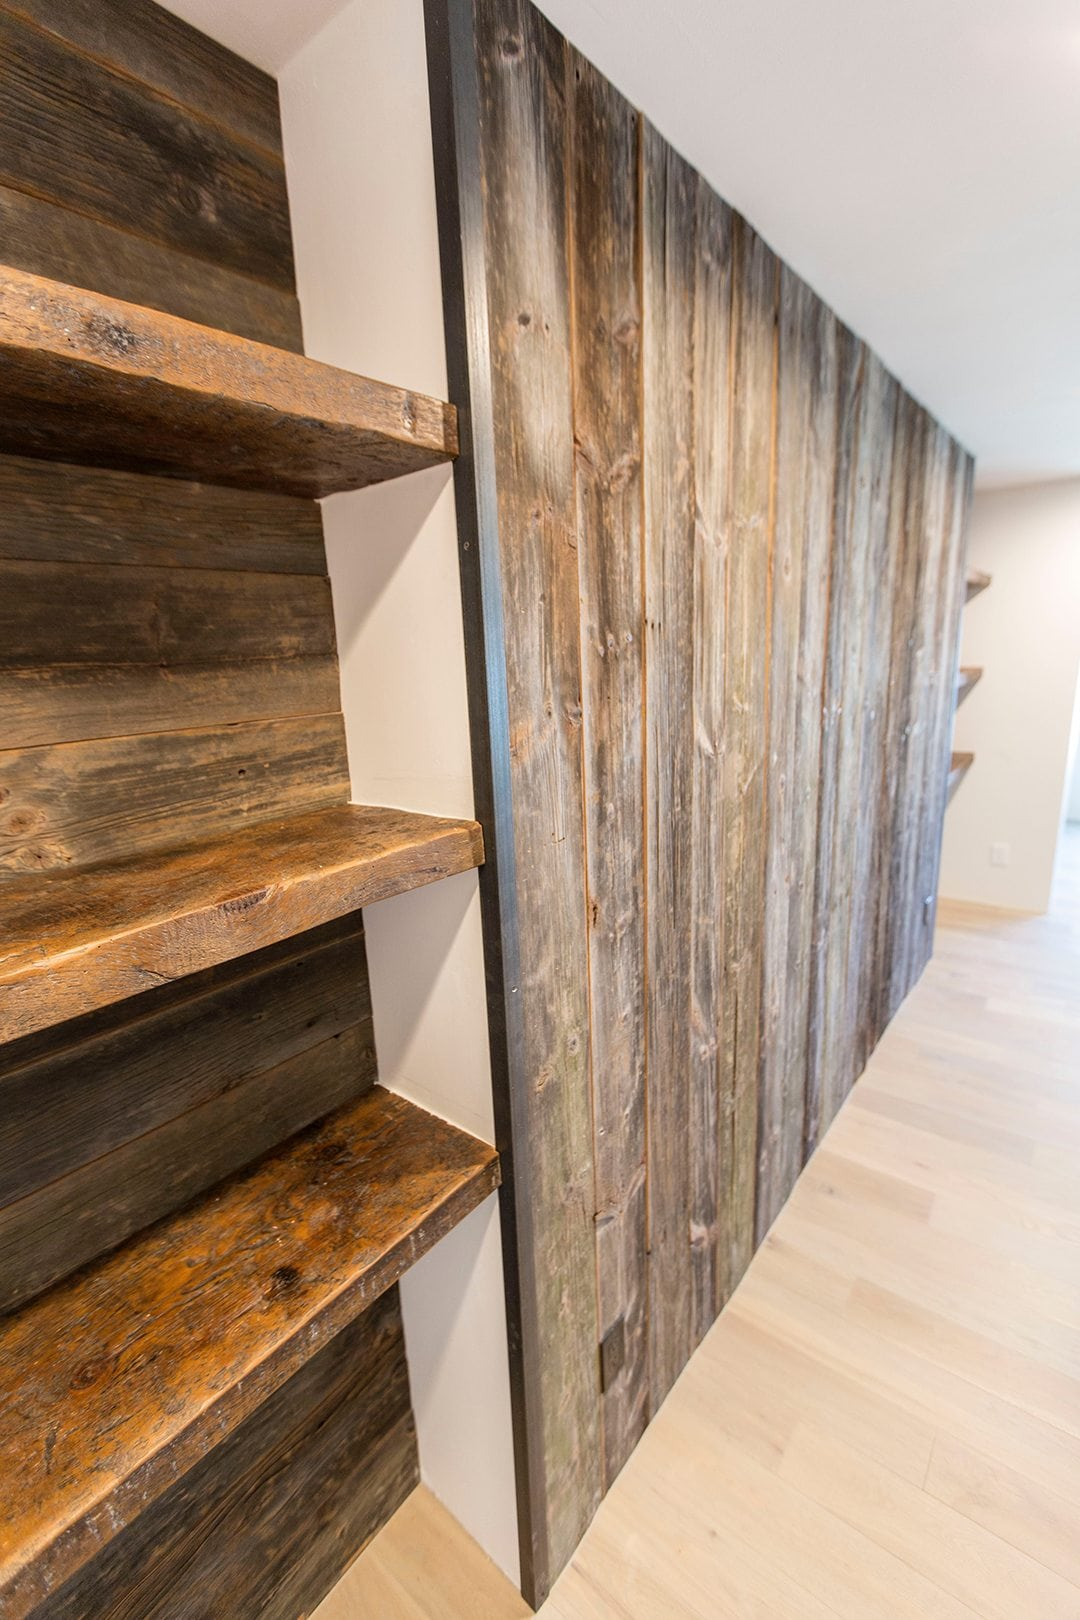 reclaimed wood wall entertainment center shelves. Black Bedroom Furniture Sets. Home Design Ideas